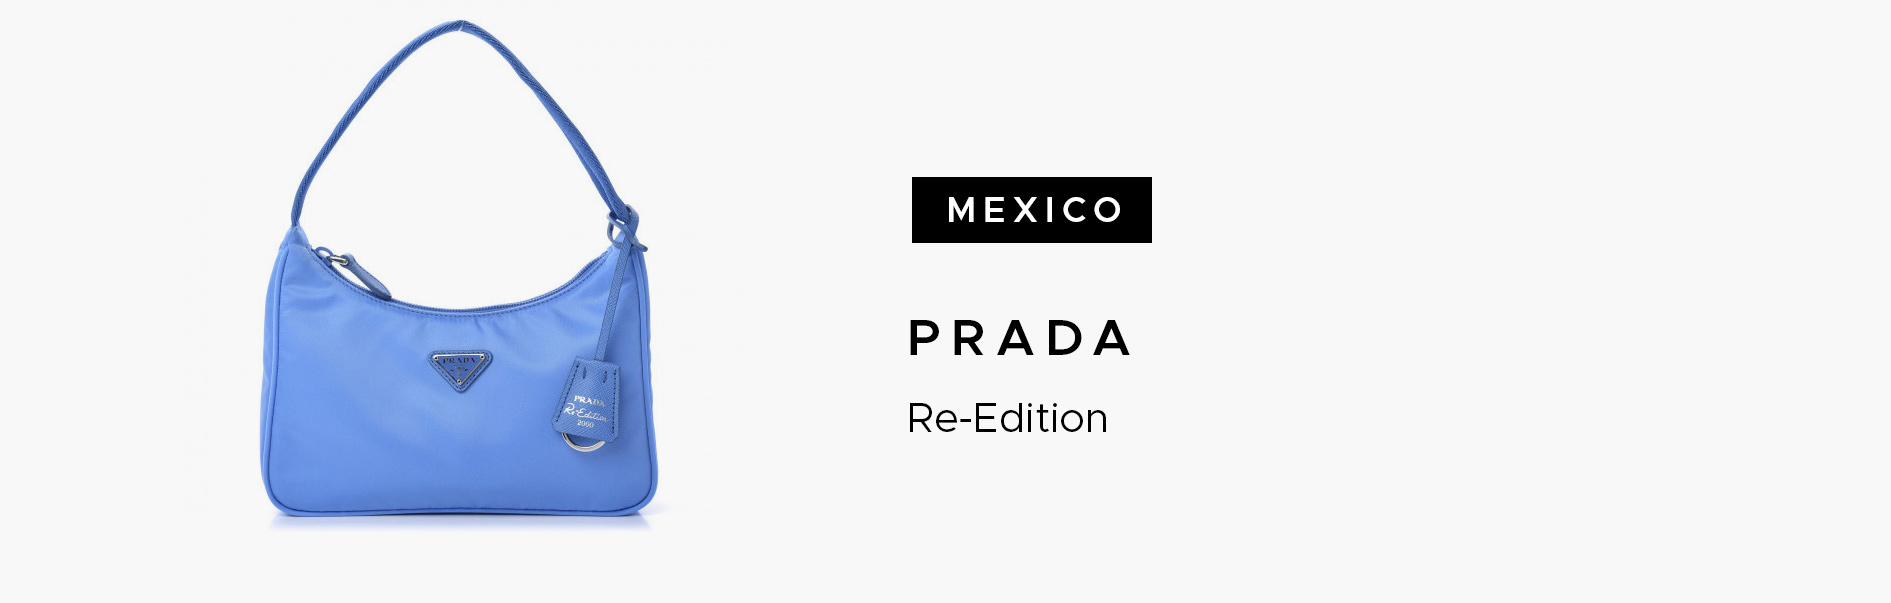 Mexico Prada Re-Edition